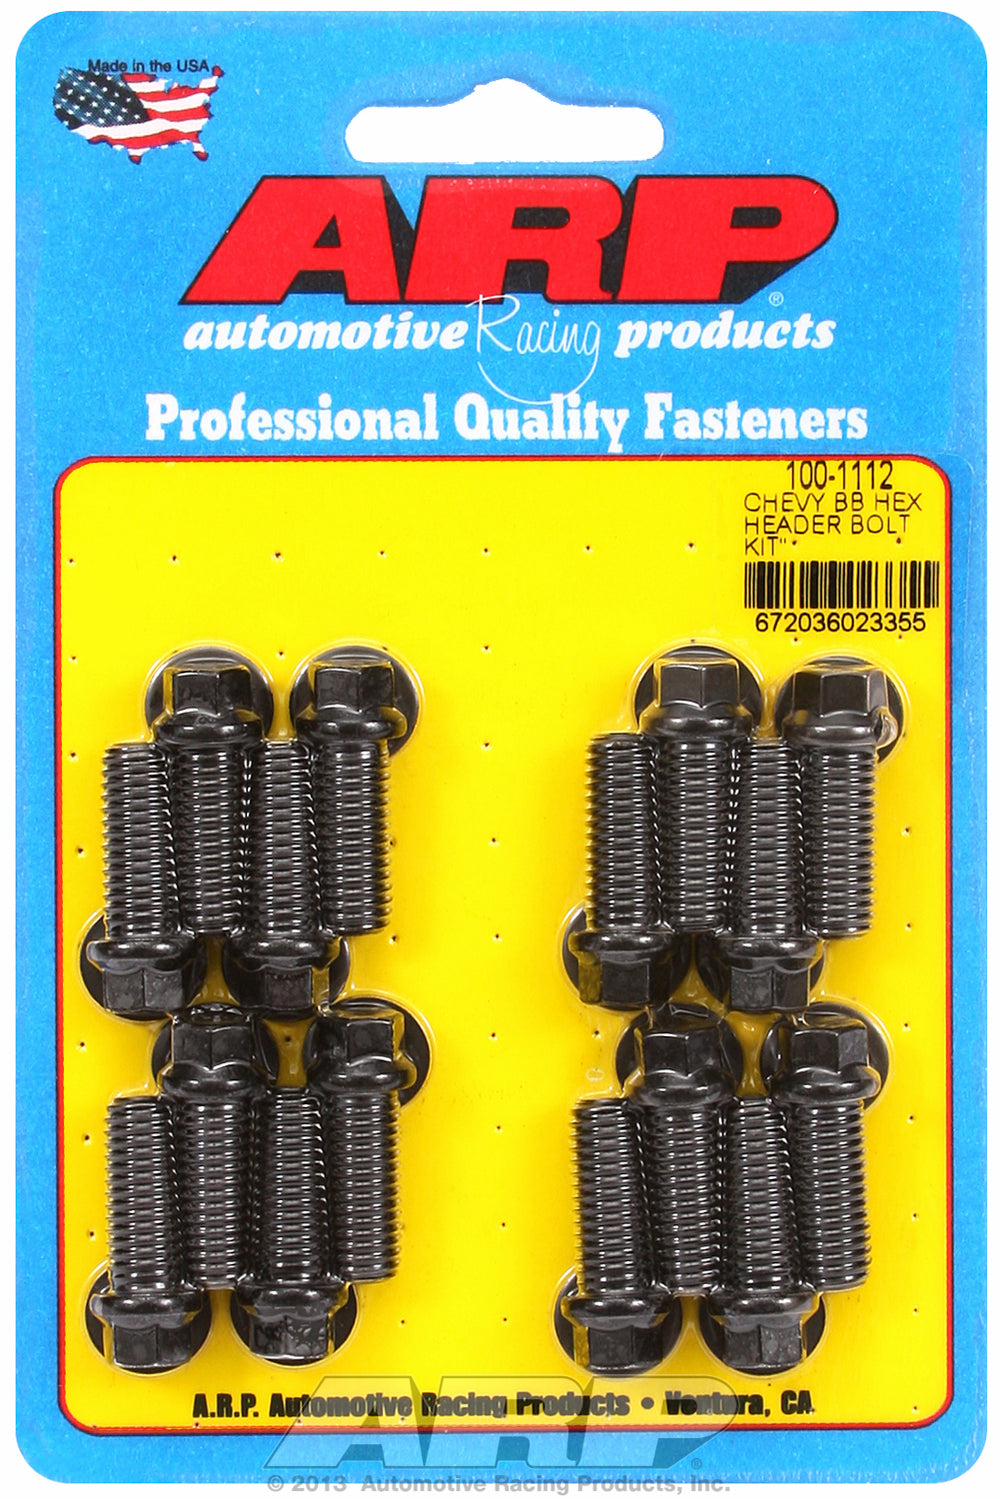 Header Bolt Kit for Chevy Big Block 3/8in Dia. 1.000in UHL Black Oxide Hex Head